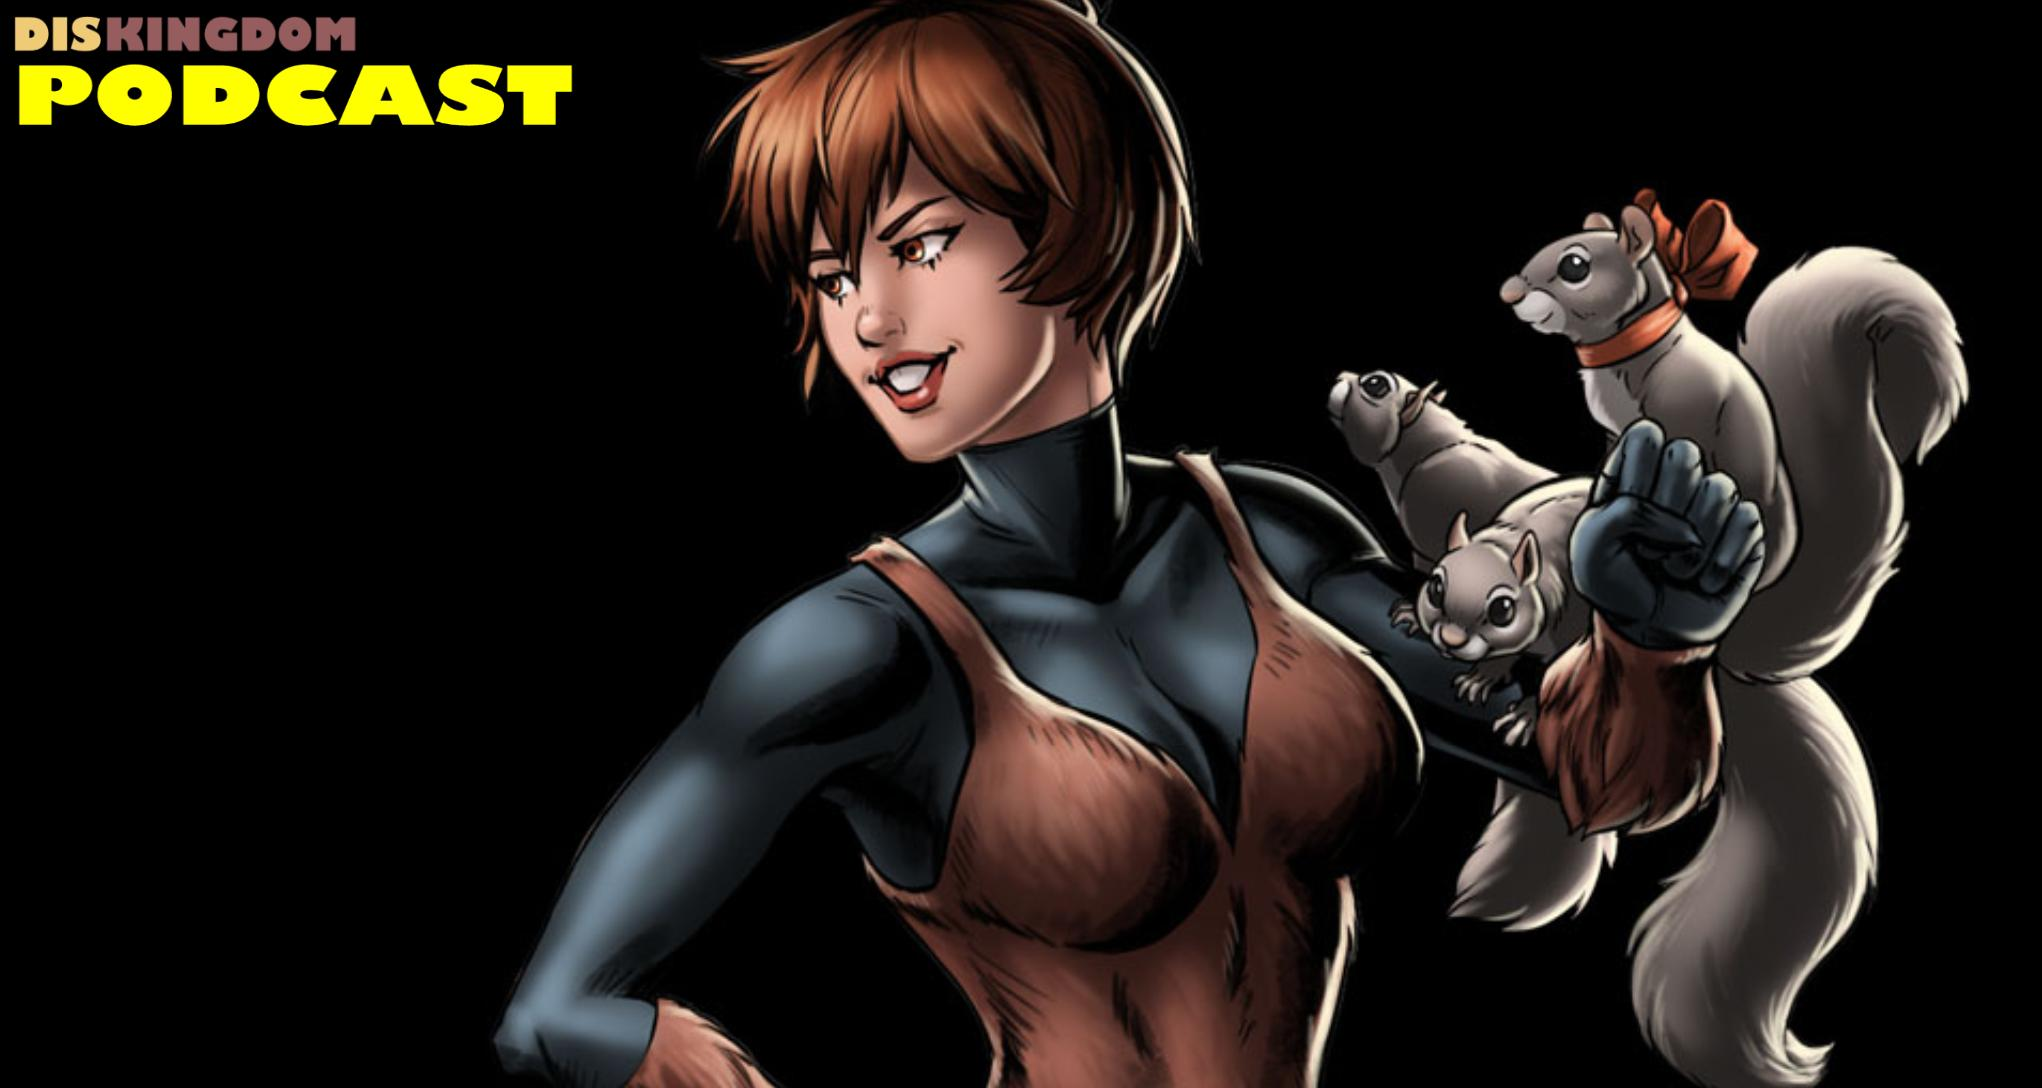 New Marvel TV Show Featuring Squirrel Girl & New Warriors Announced | DisKingdom Podcast